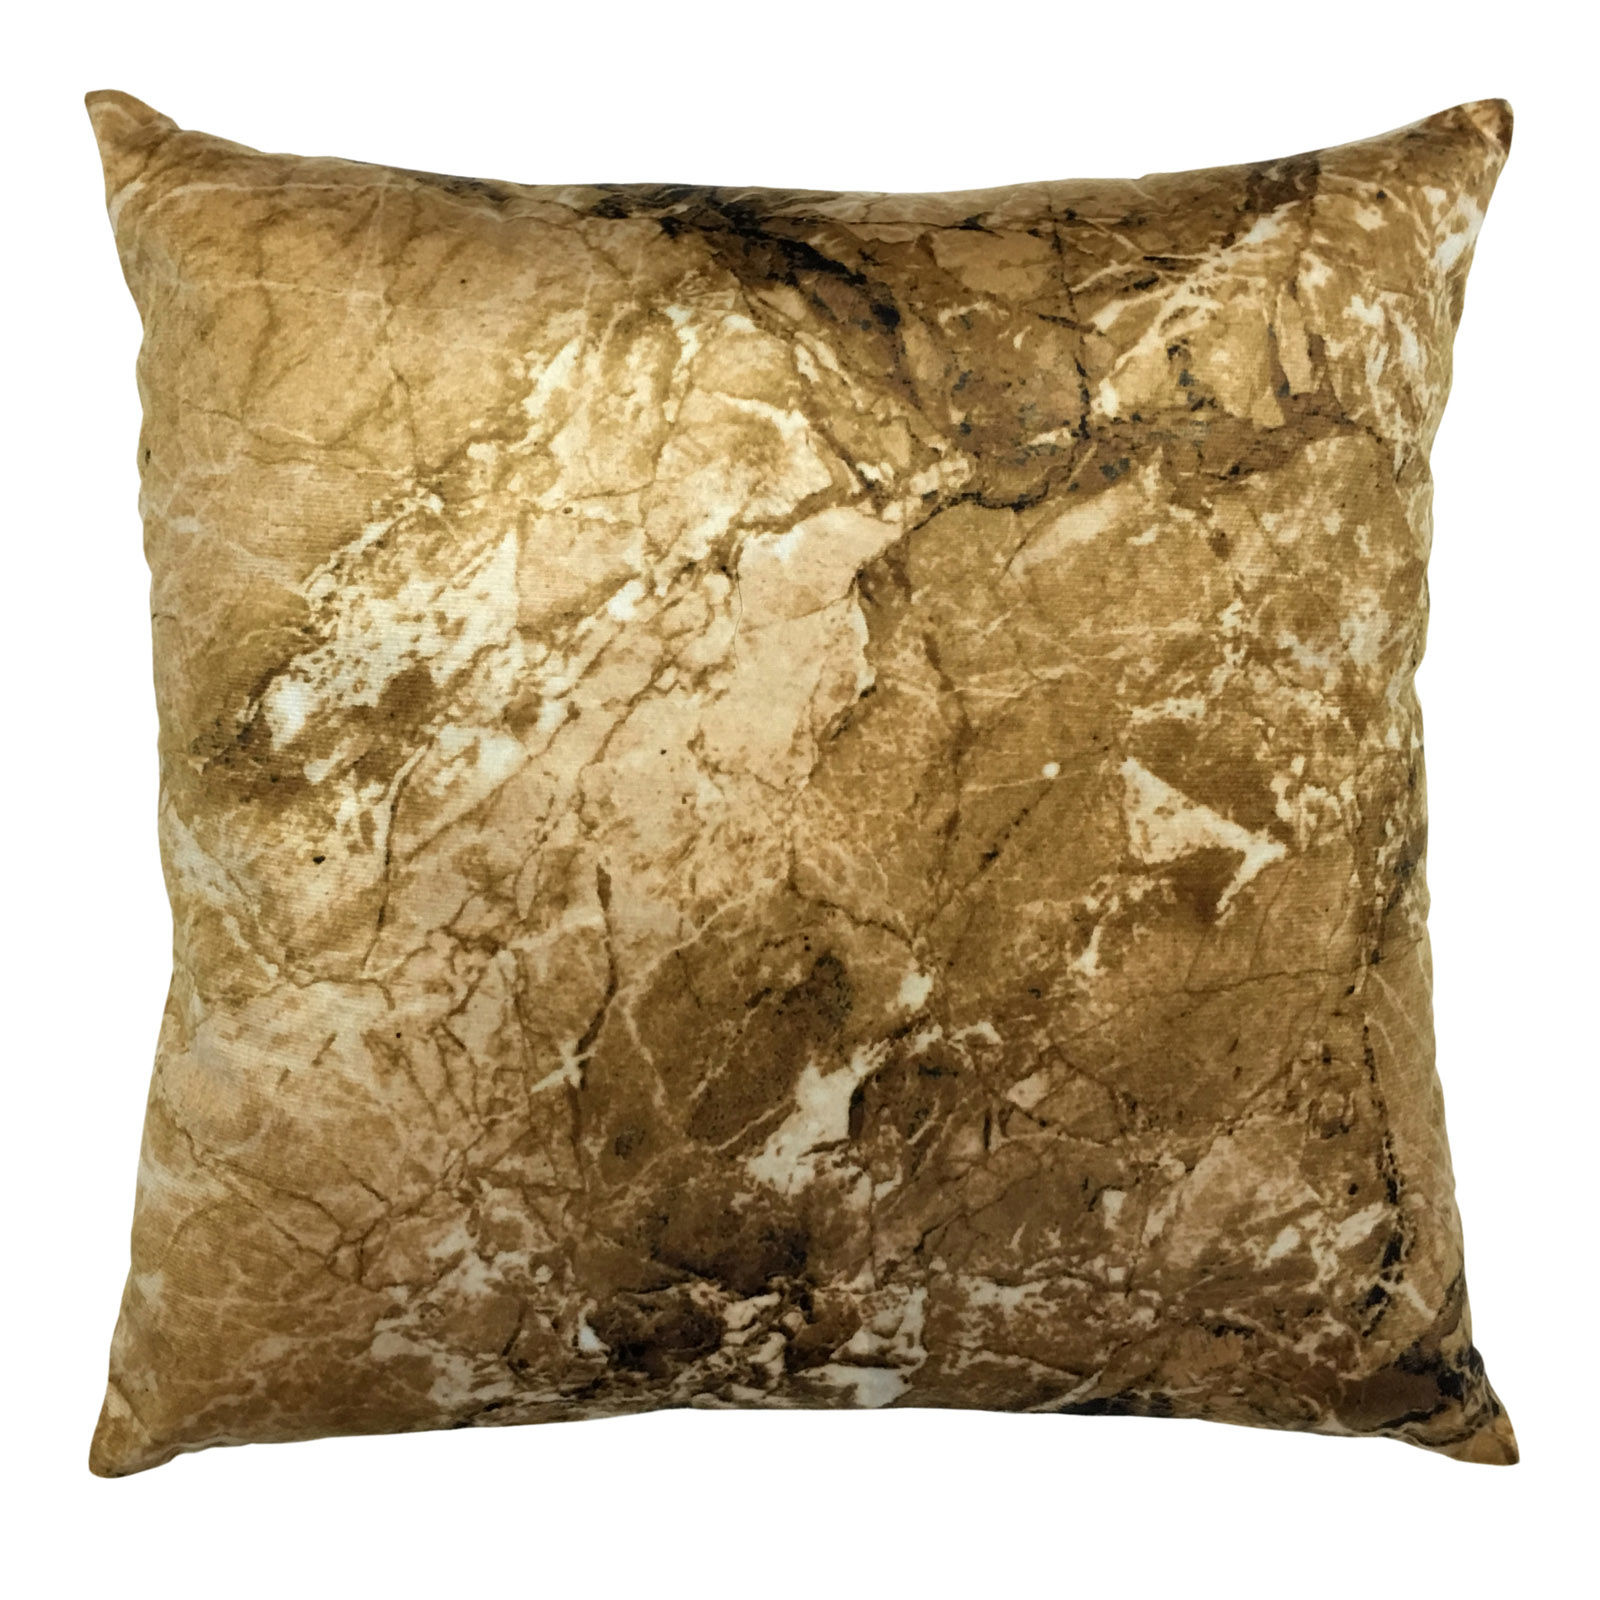 Throw Pillows for Bed | Modern Throw Pillows | Gold Throw Pillows